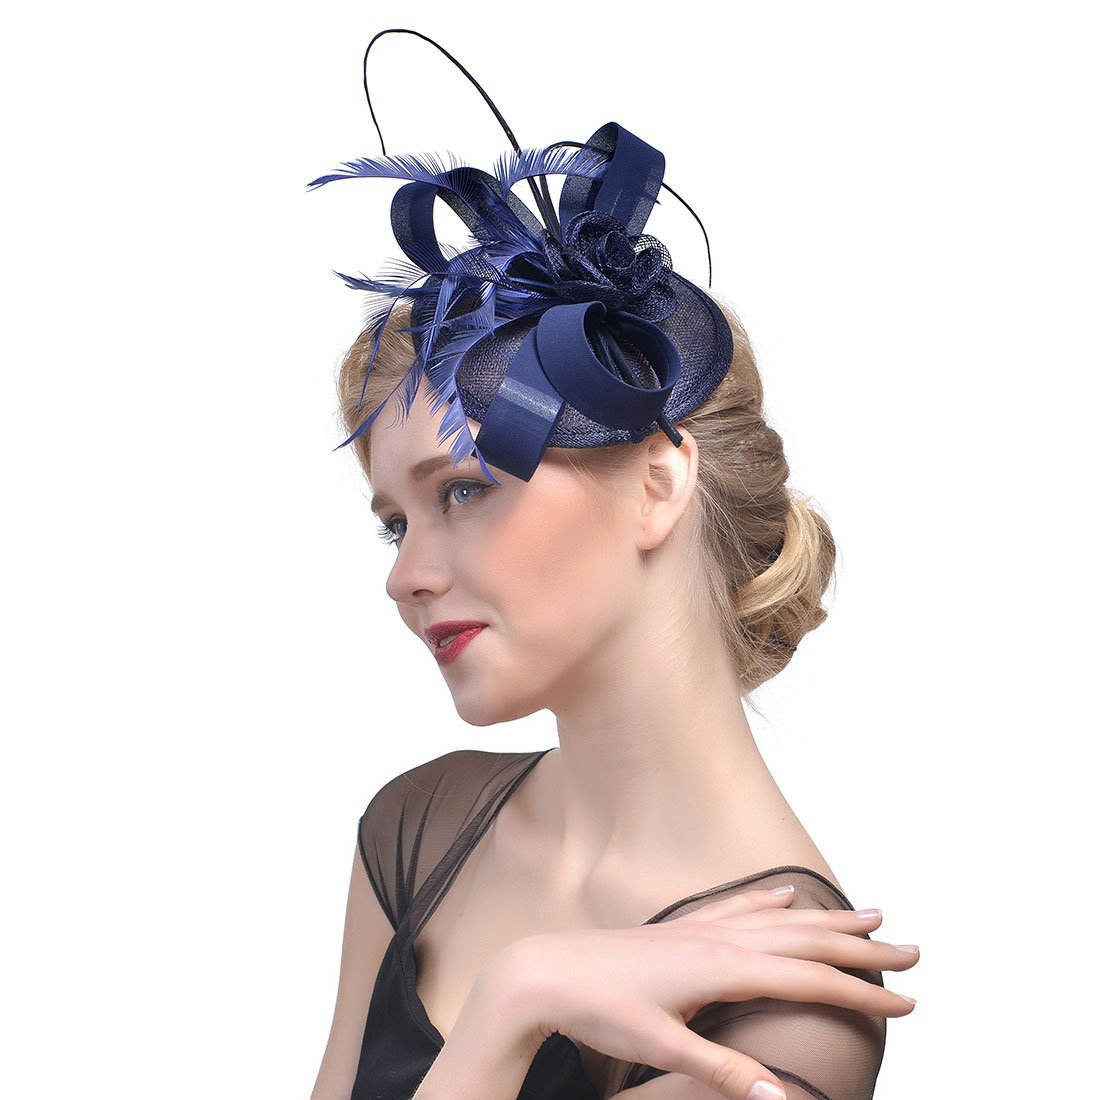 Zongsi Fascinators Hat Flower Mesh Feathers Hairpin Hat Clip Cocktail Tea Wedding Party Headwear for Girls and Women (Style 1, Navy Blue)